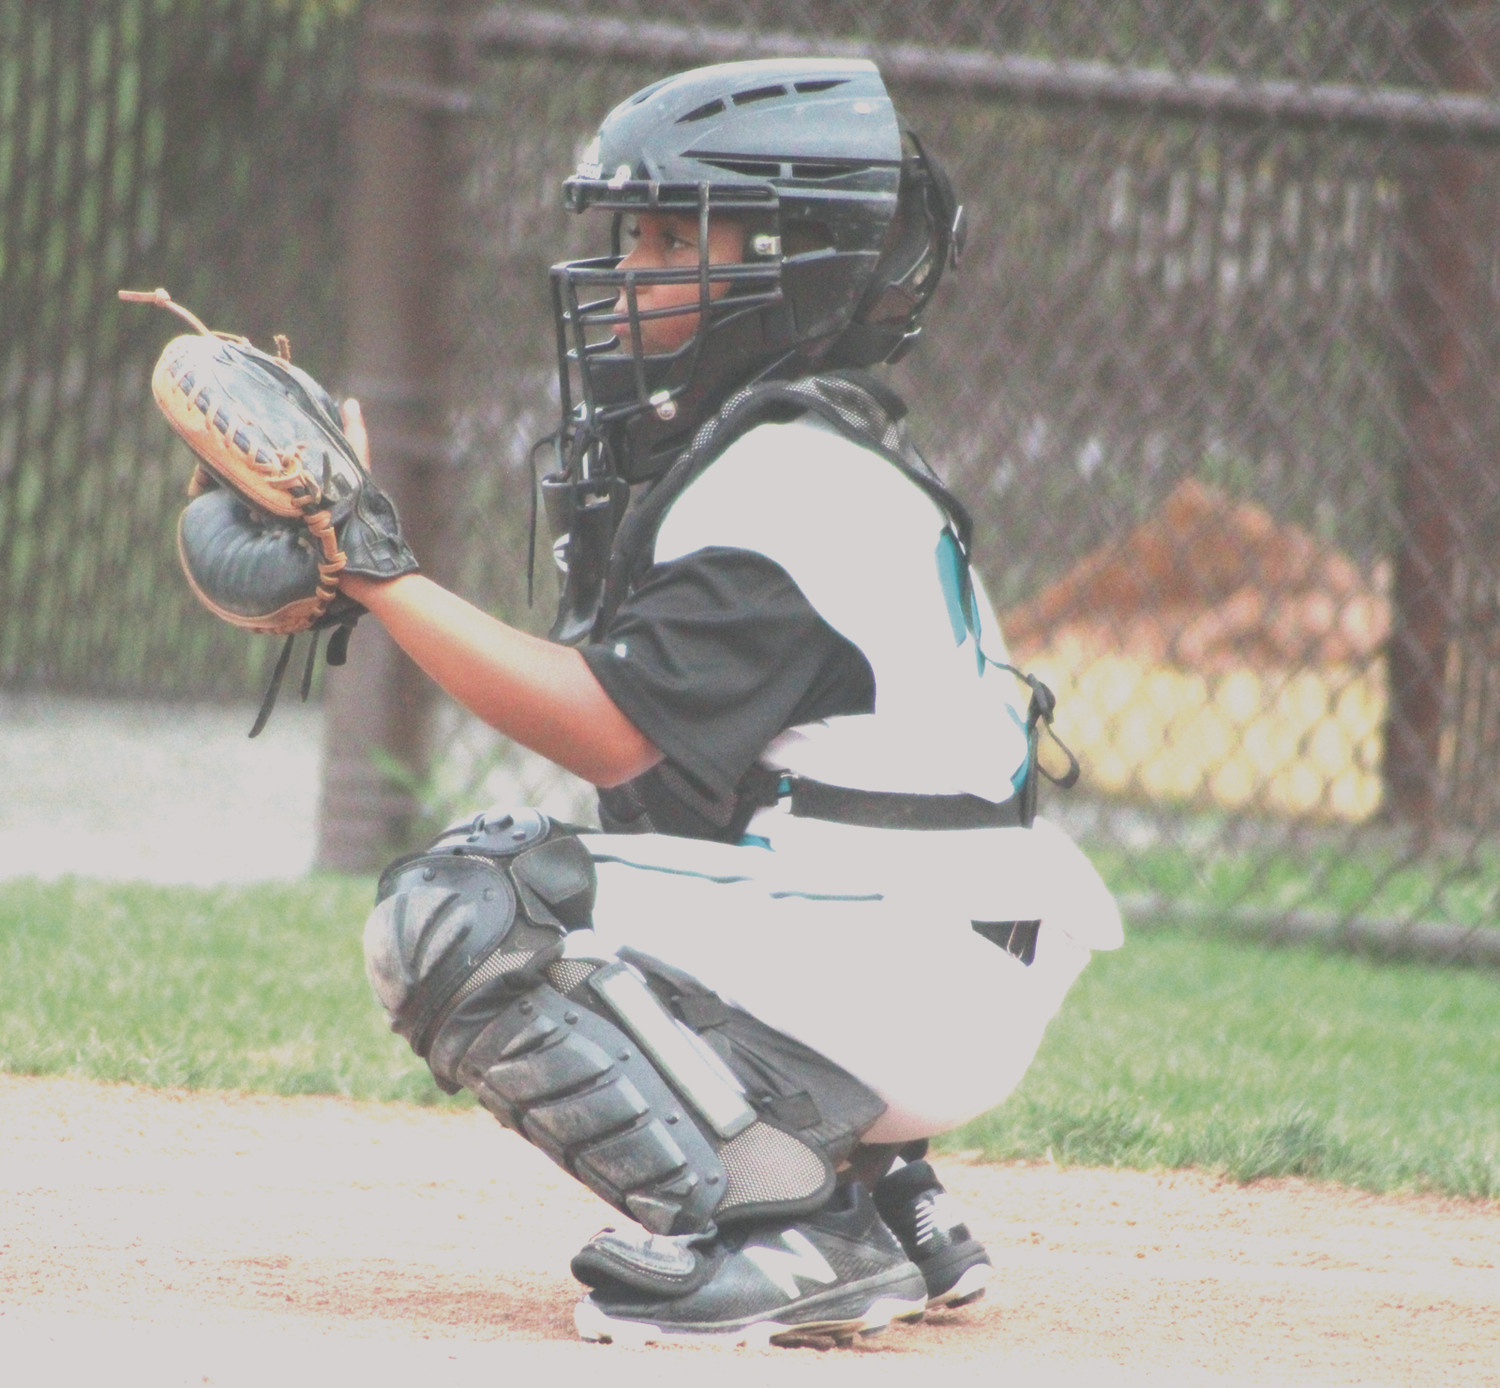 CALLING THE SHOTS: Cranston Western's Jeremy Silverio catching.